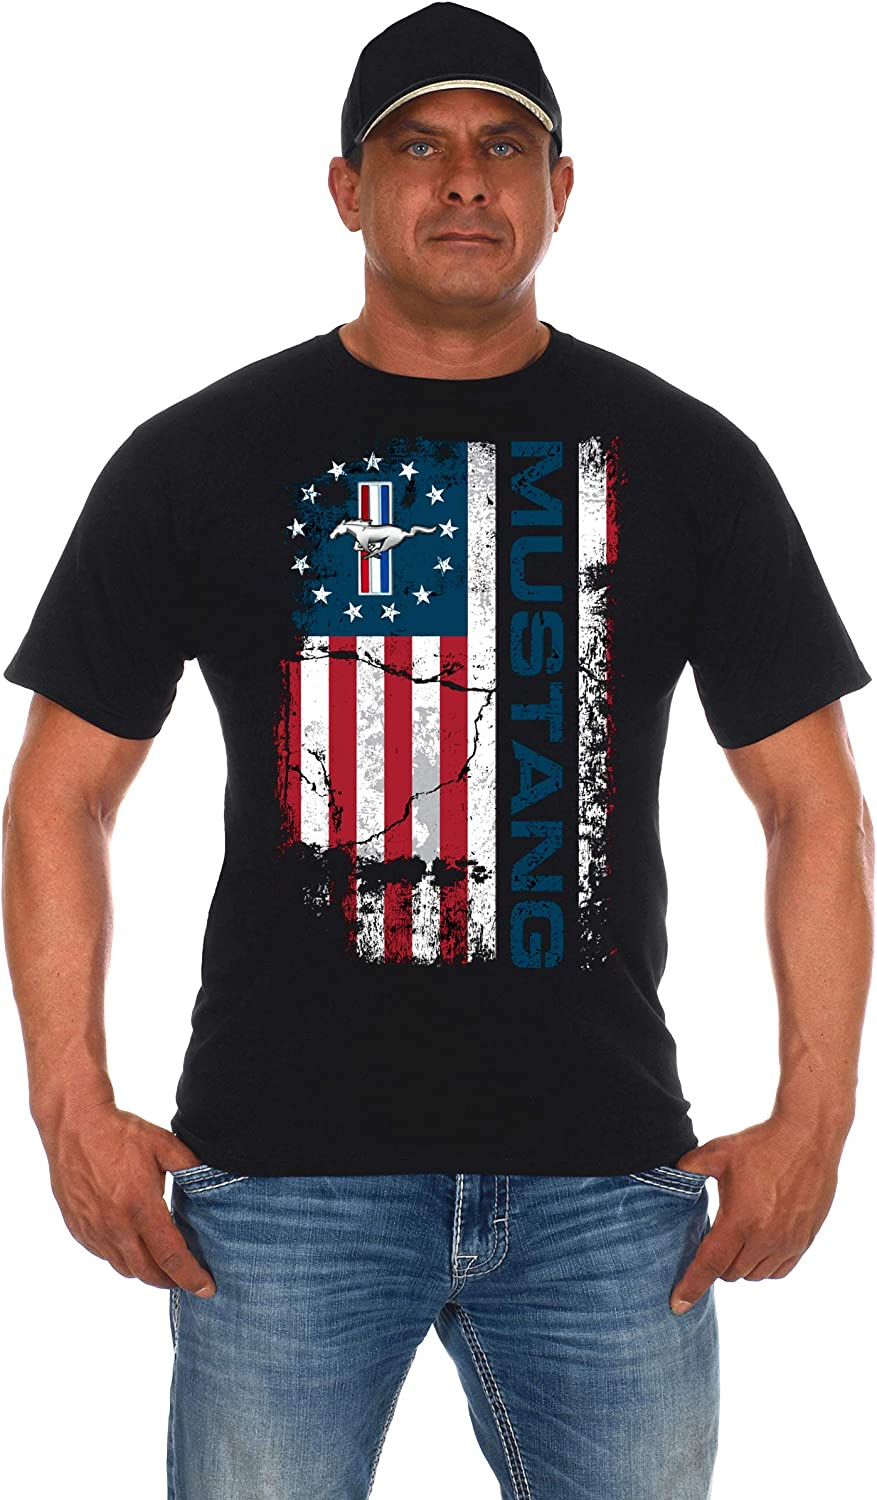 JH DESIGN GROUP Mens Ford Mustang Distressed U.S.A Old Glory Flag T-Shirt